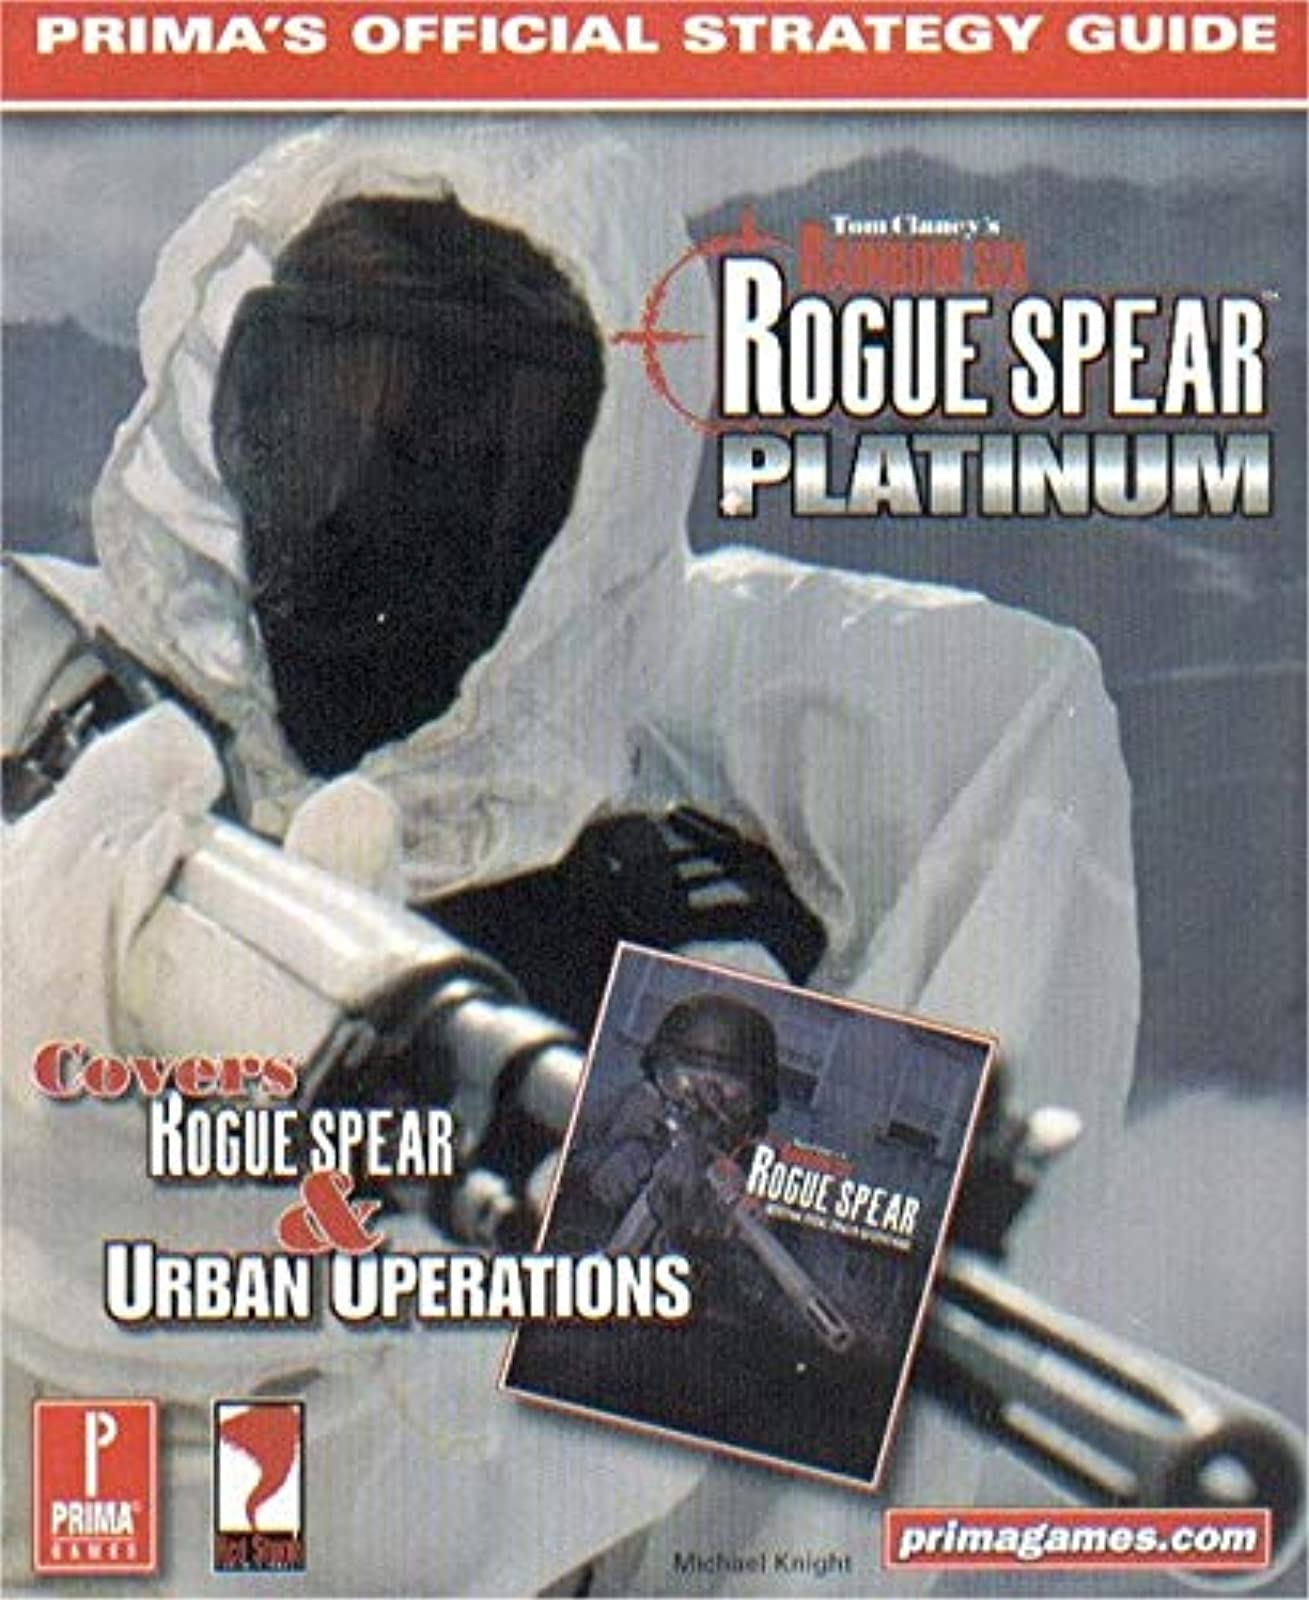 Tom Clancy's Rainbow Six Rogue Spear Platinum Official Strategy Guide Book 6